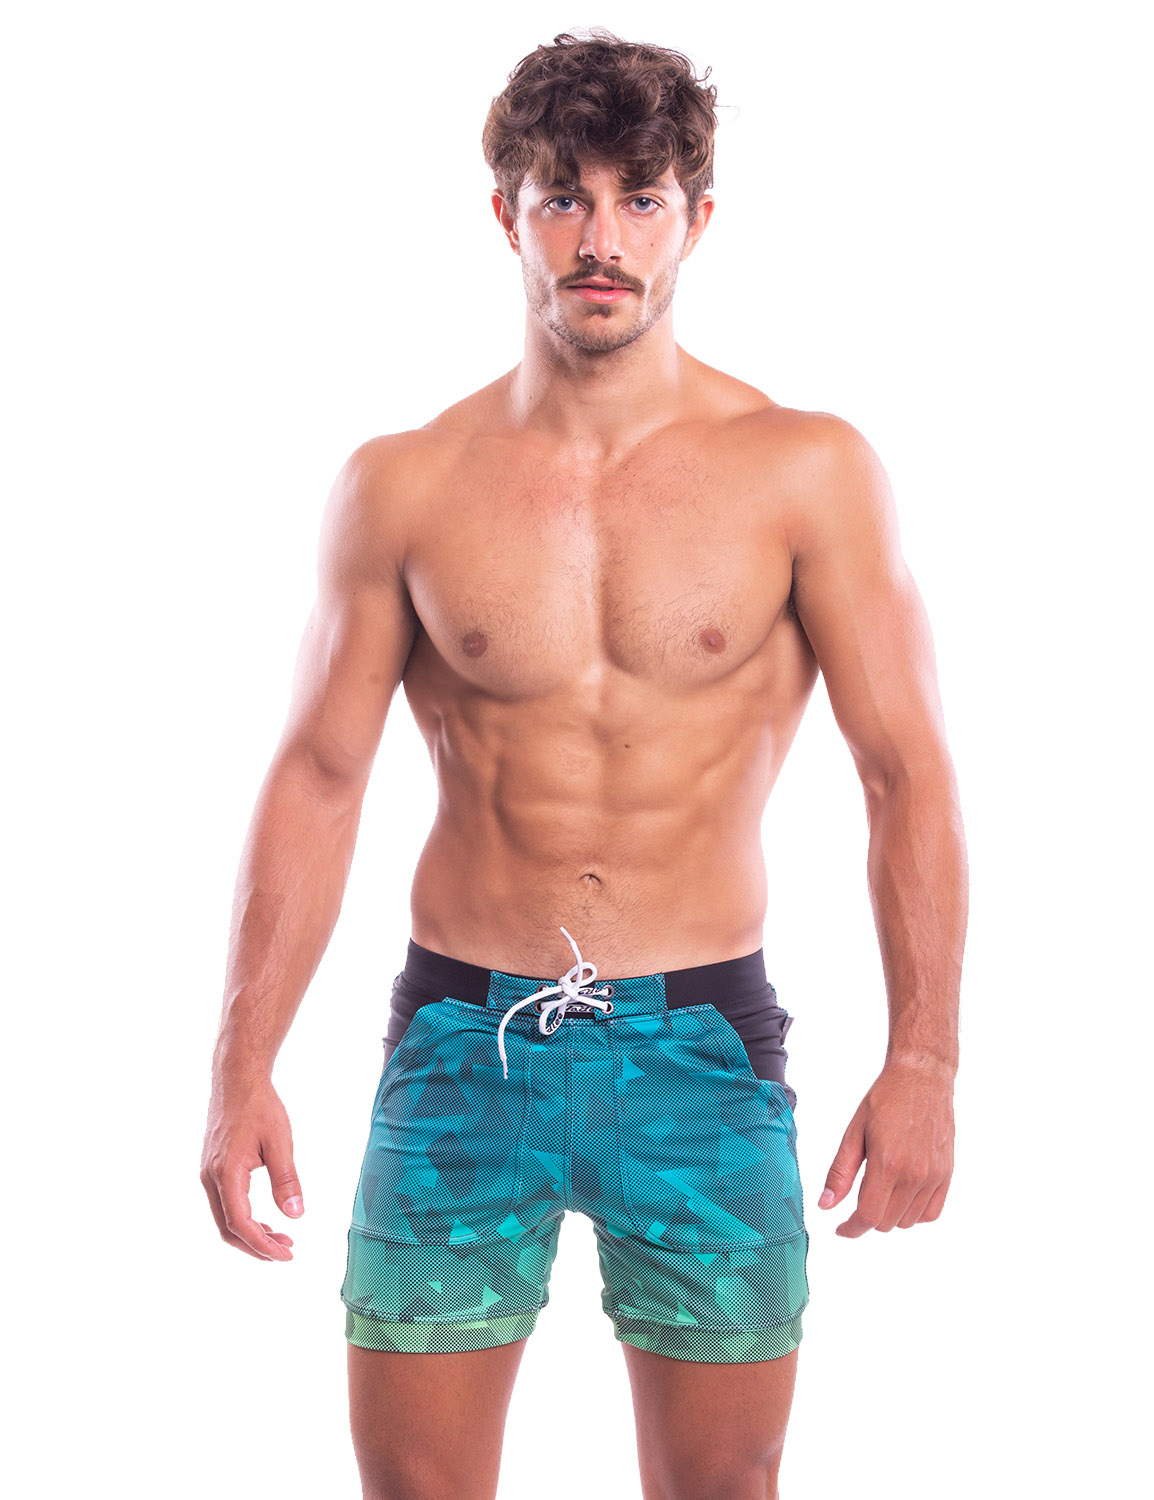 501752bcd4 Taddlee Mens Swimwear Long Swimsuits Swim Briefs Boxer Cut Pockets Bathing  Suits Item NO: TAD-YK55-XF192